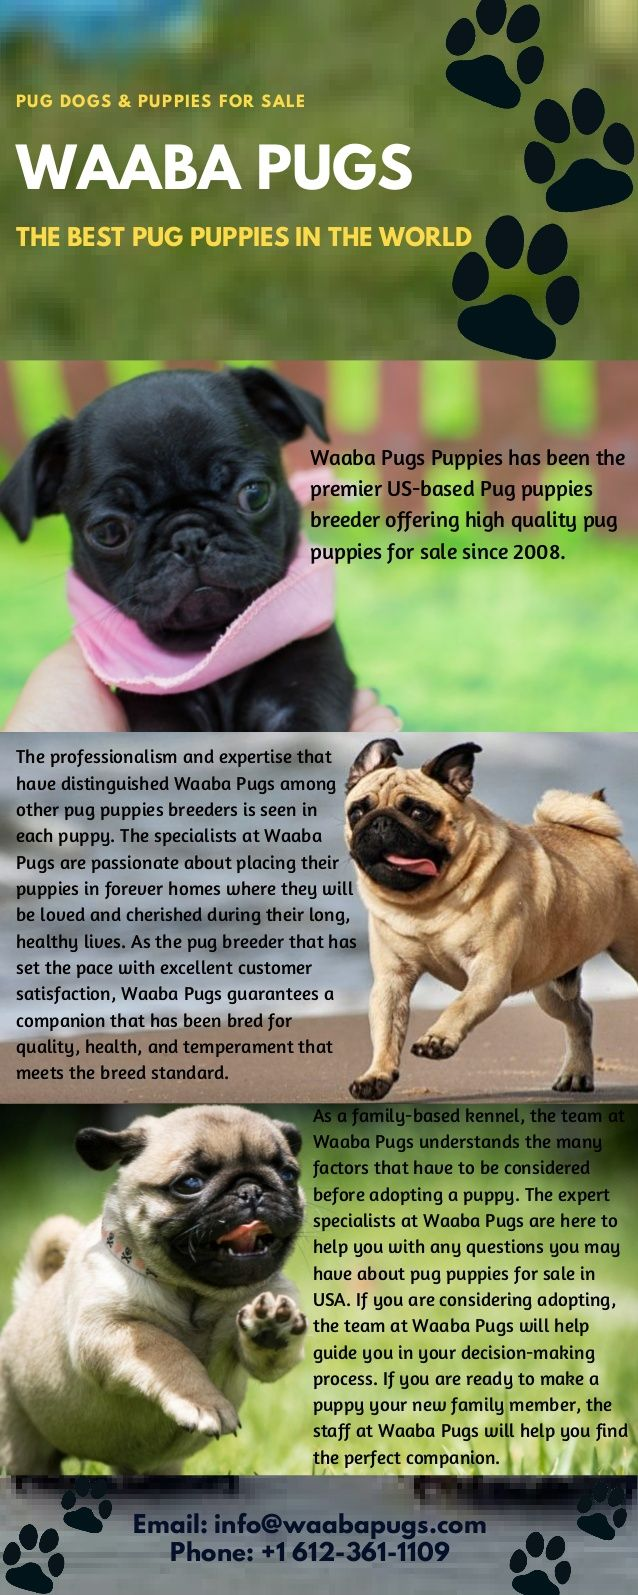 Best Breed Waaba Pugs Dogs Puppies For Sale If You Are